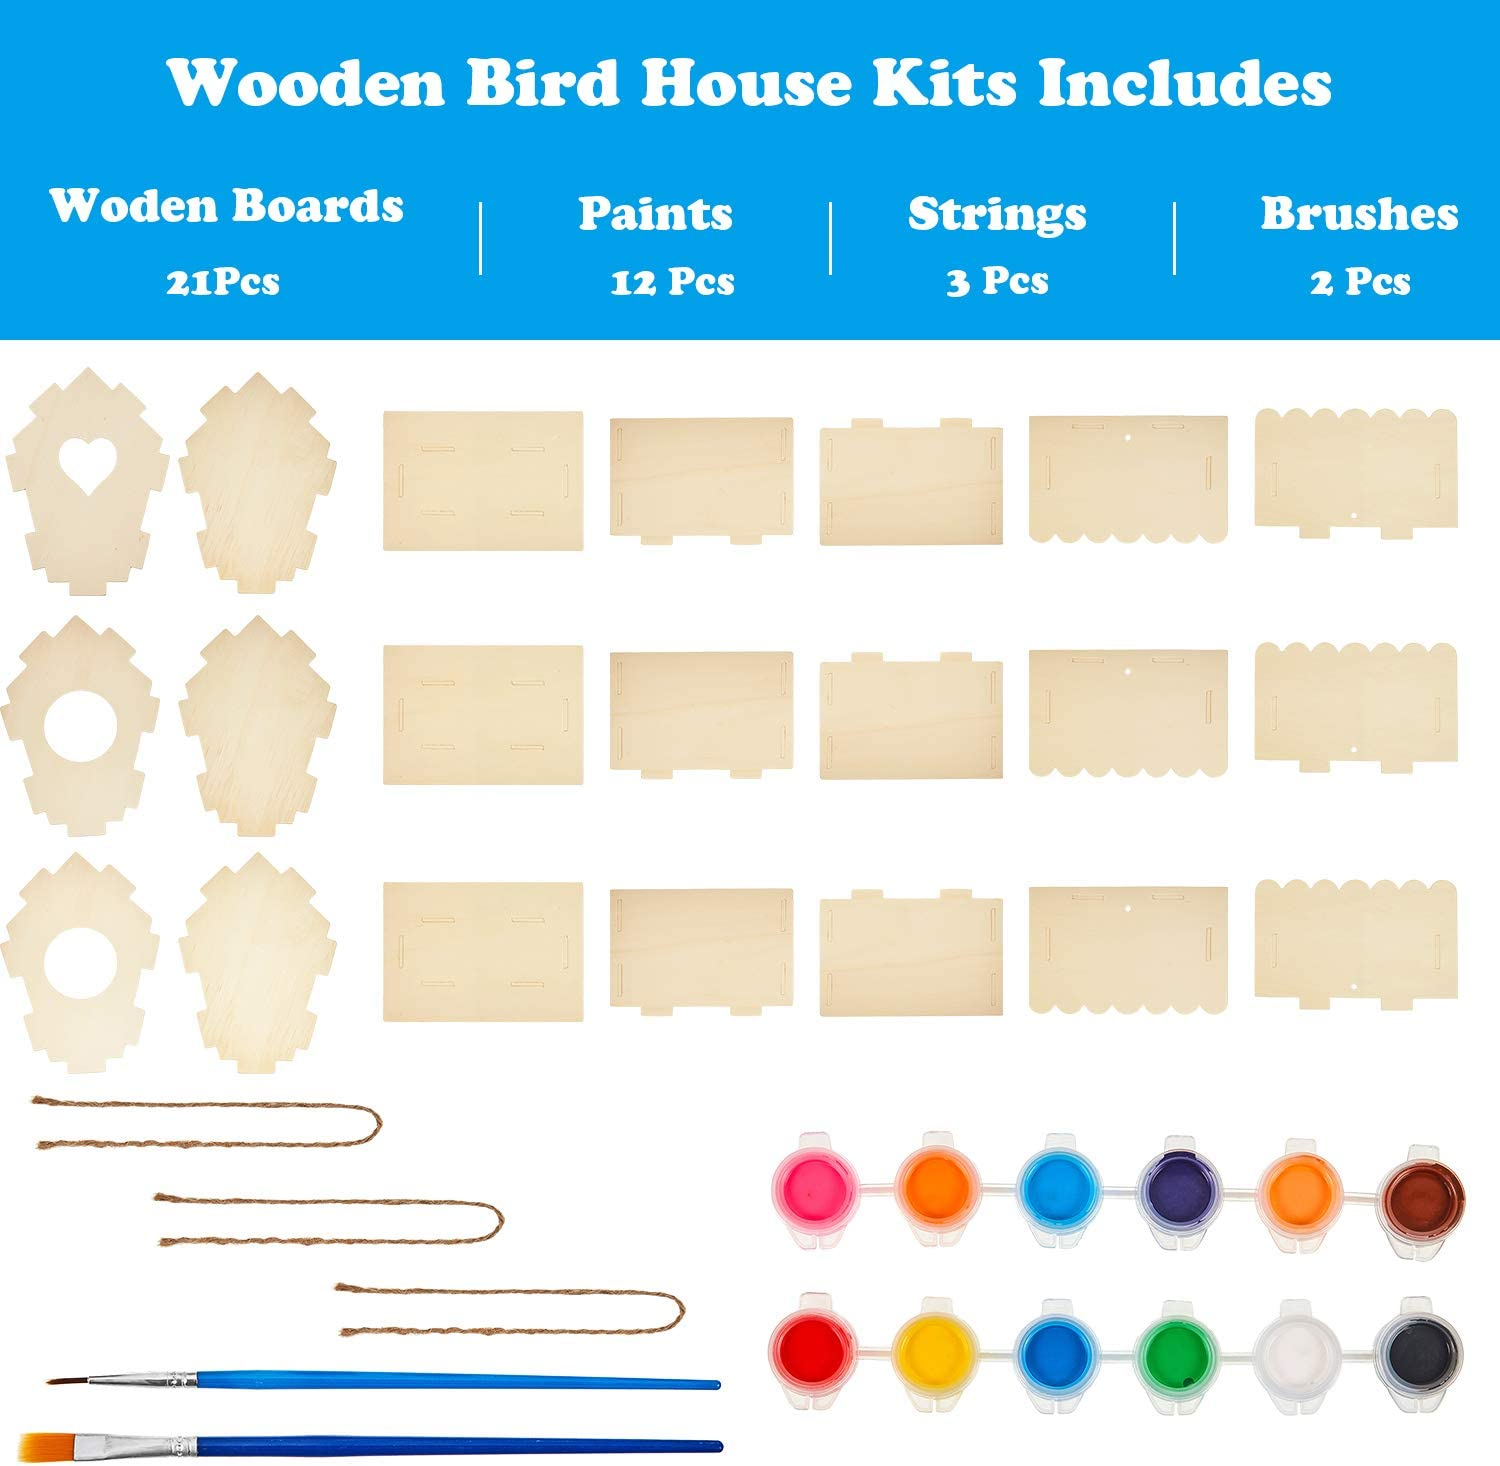 3 Pieces Wooden Bird House Kits Build and Paint Birdhouse Unfinished Hanging Craft Bird Houses with 12 Pieces Paints and 2 Pieces Brushes for DIY Educational Craft Art